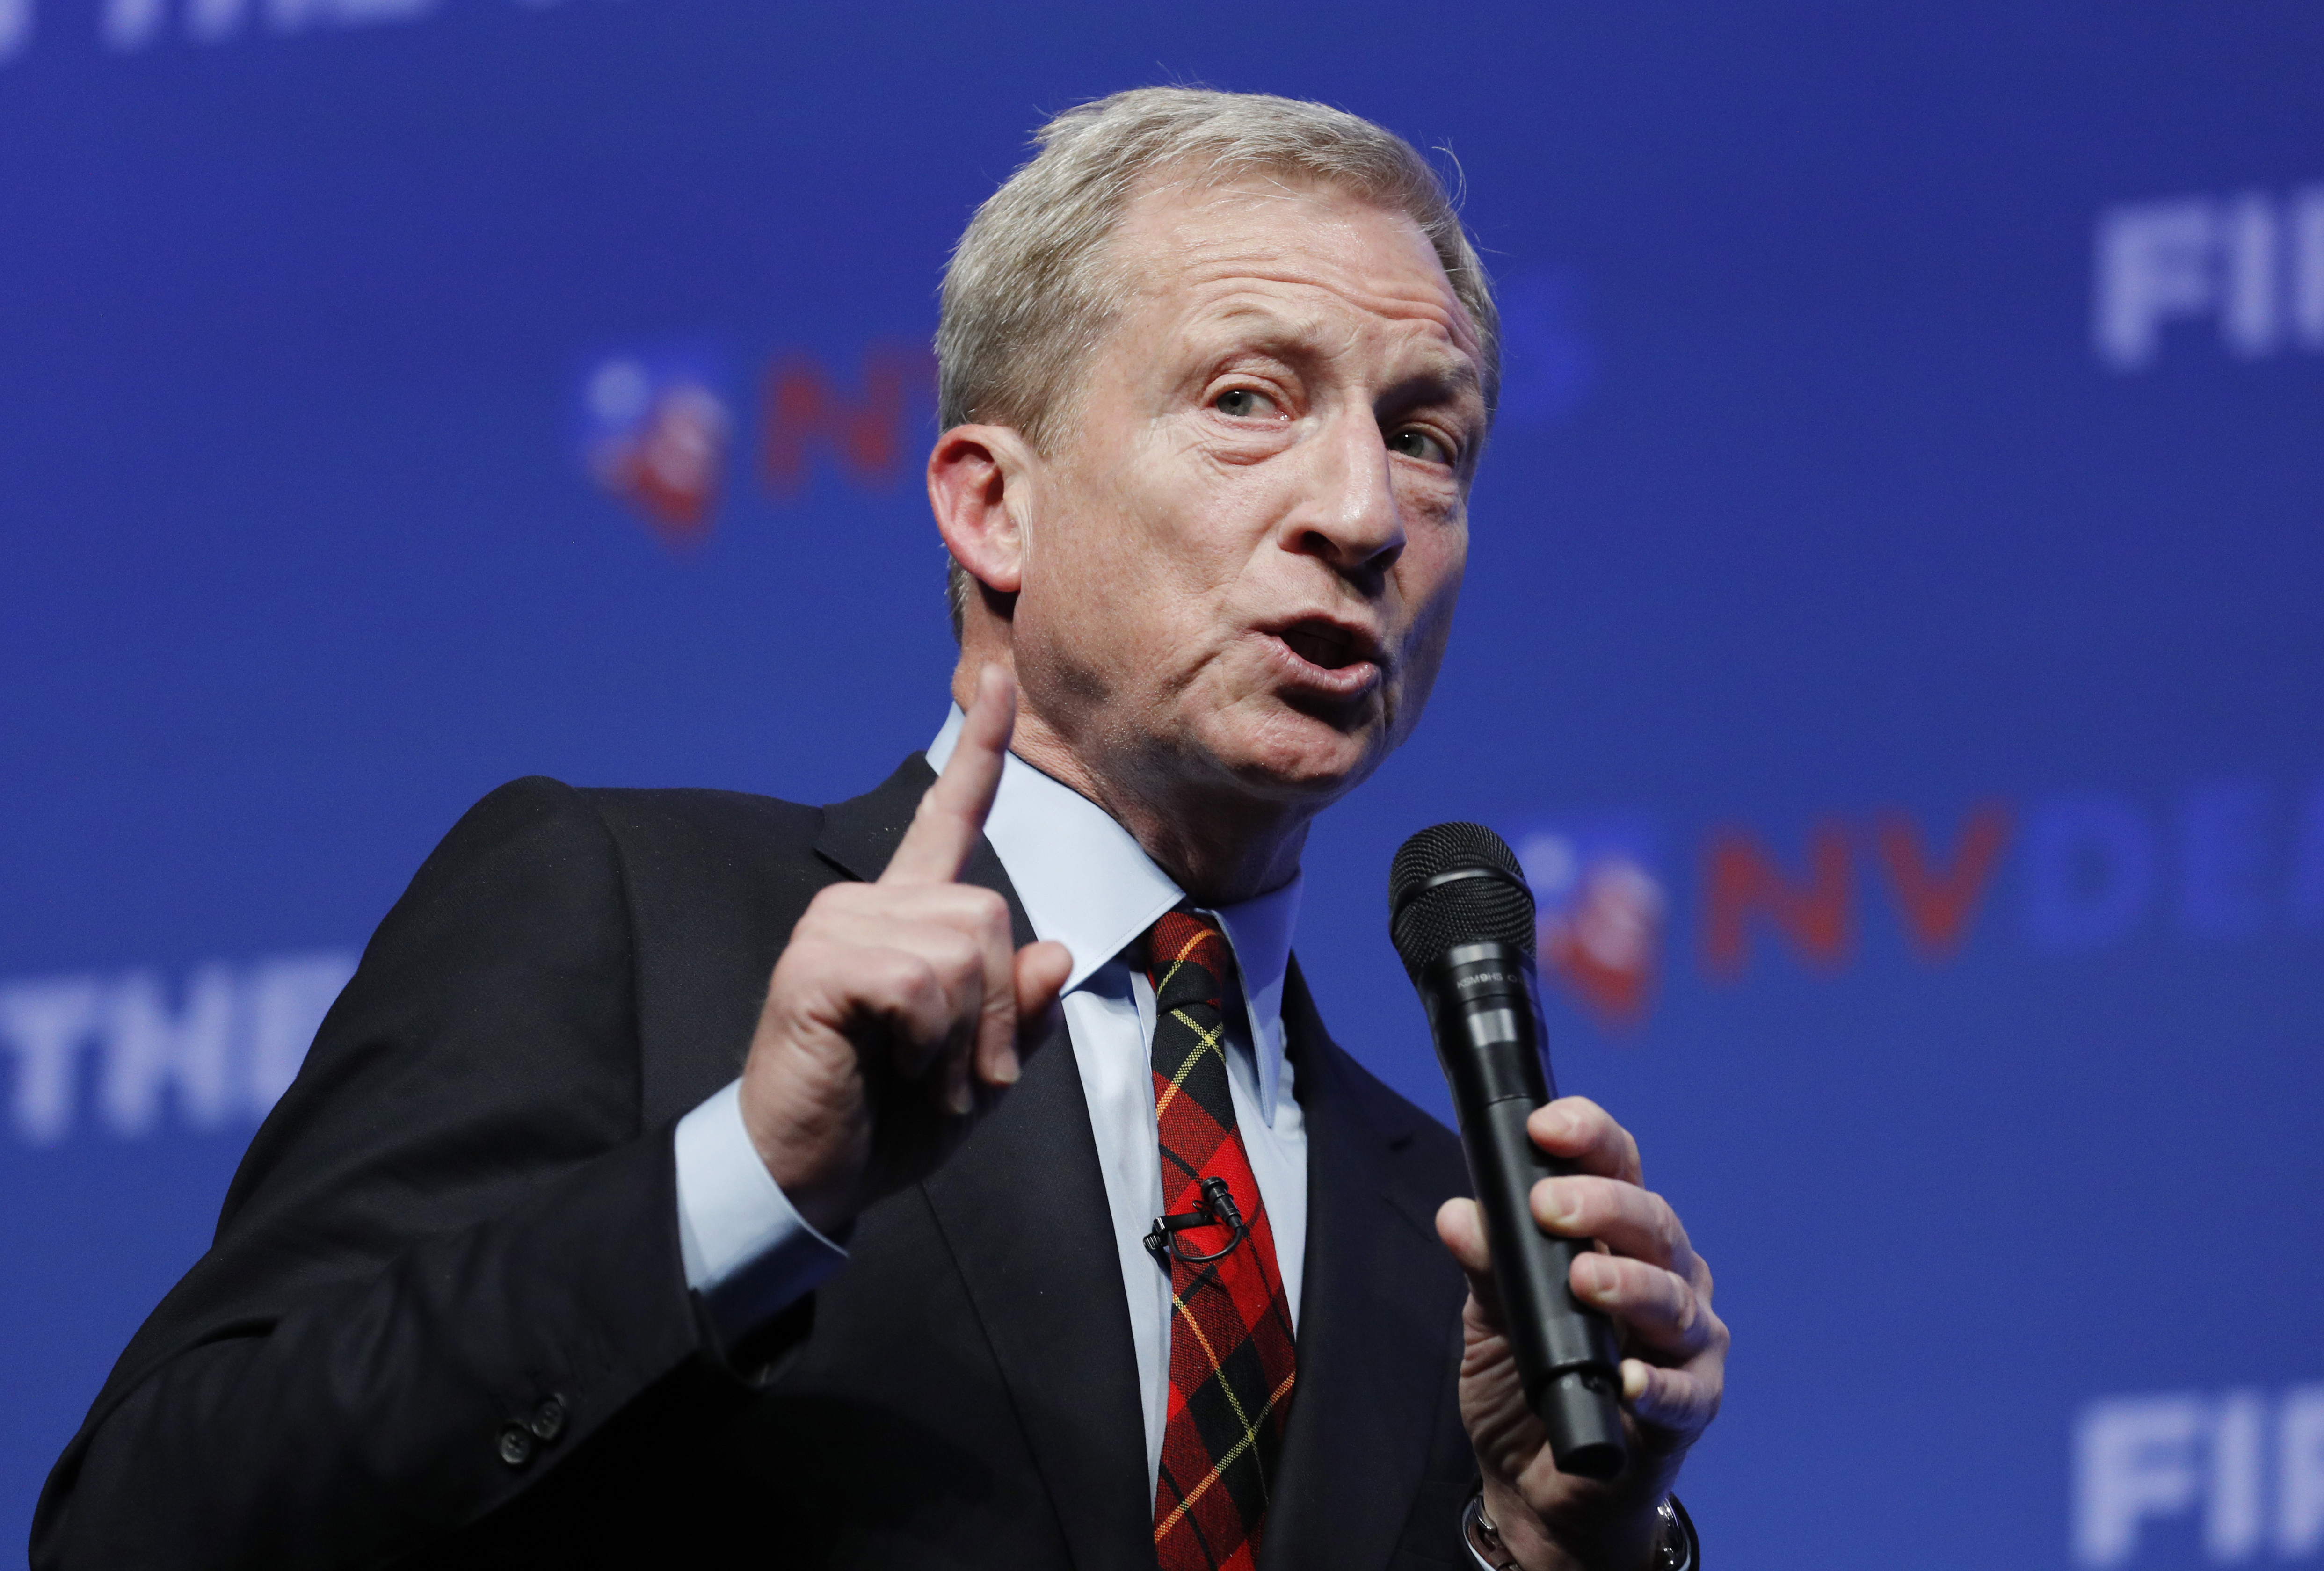 Tom Steyer: I'm the only candidate who will say climate change is 'number one priority'